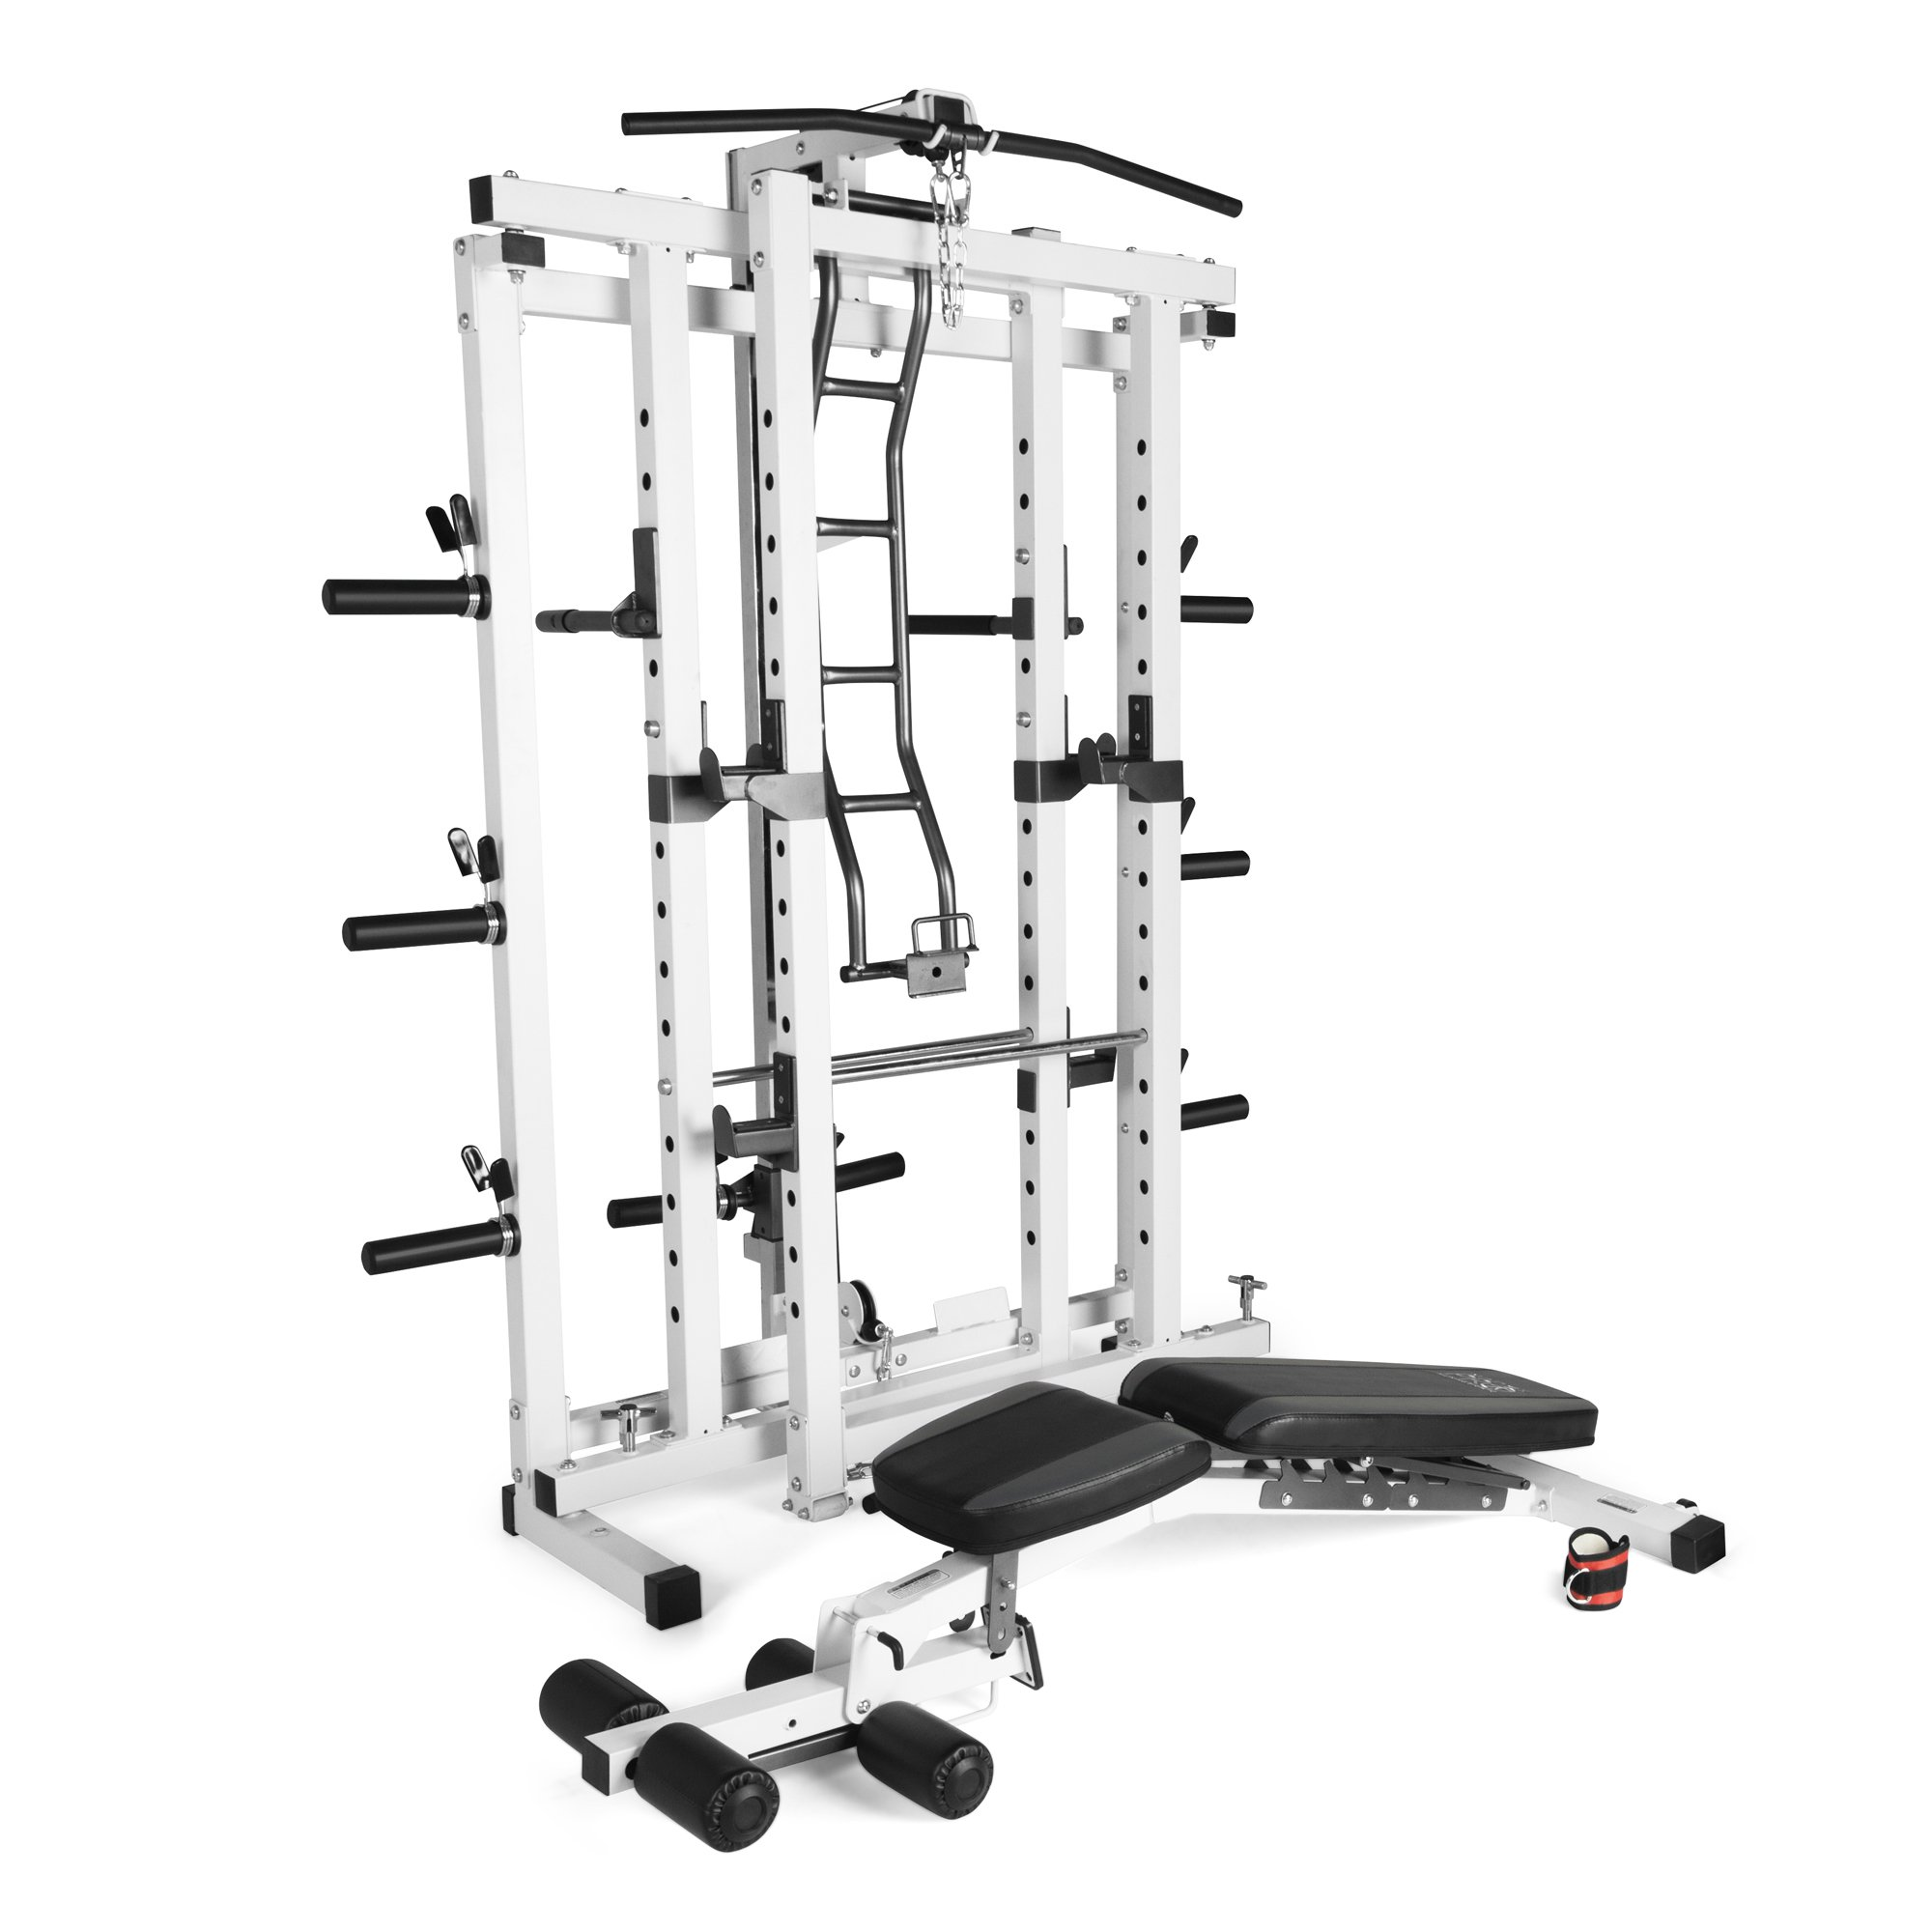 marcy pro deluxe folding total body home gym cage power rack system with bench walmart com